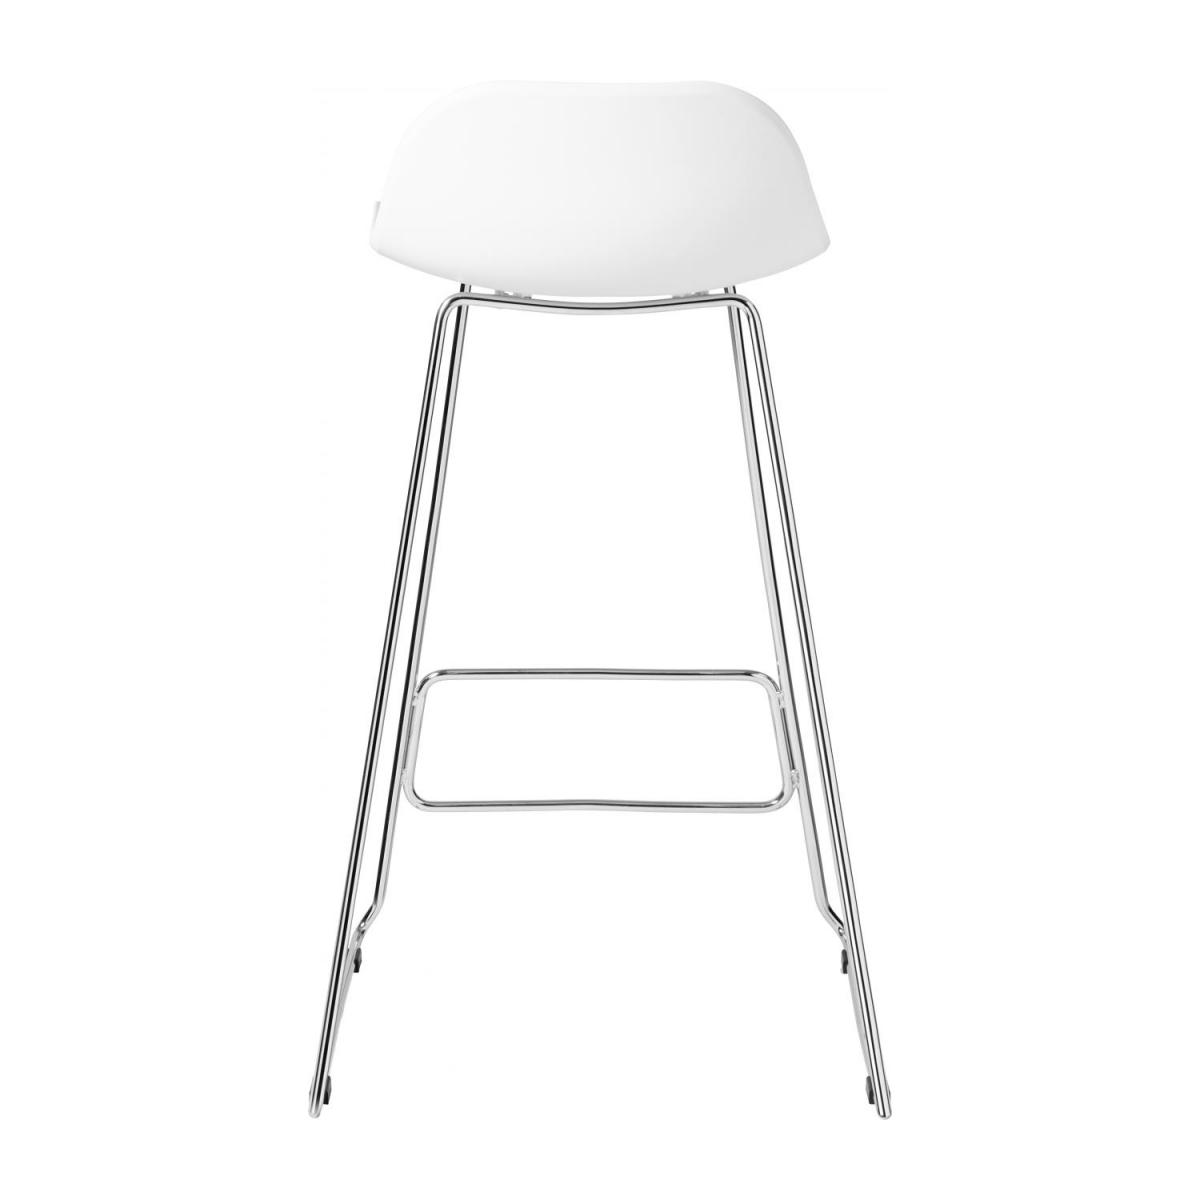 White high stool in polypropylene and lacquered steel legs n°3